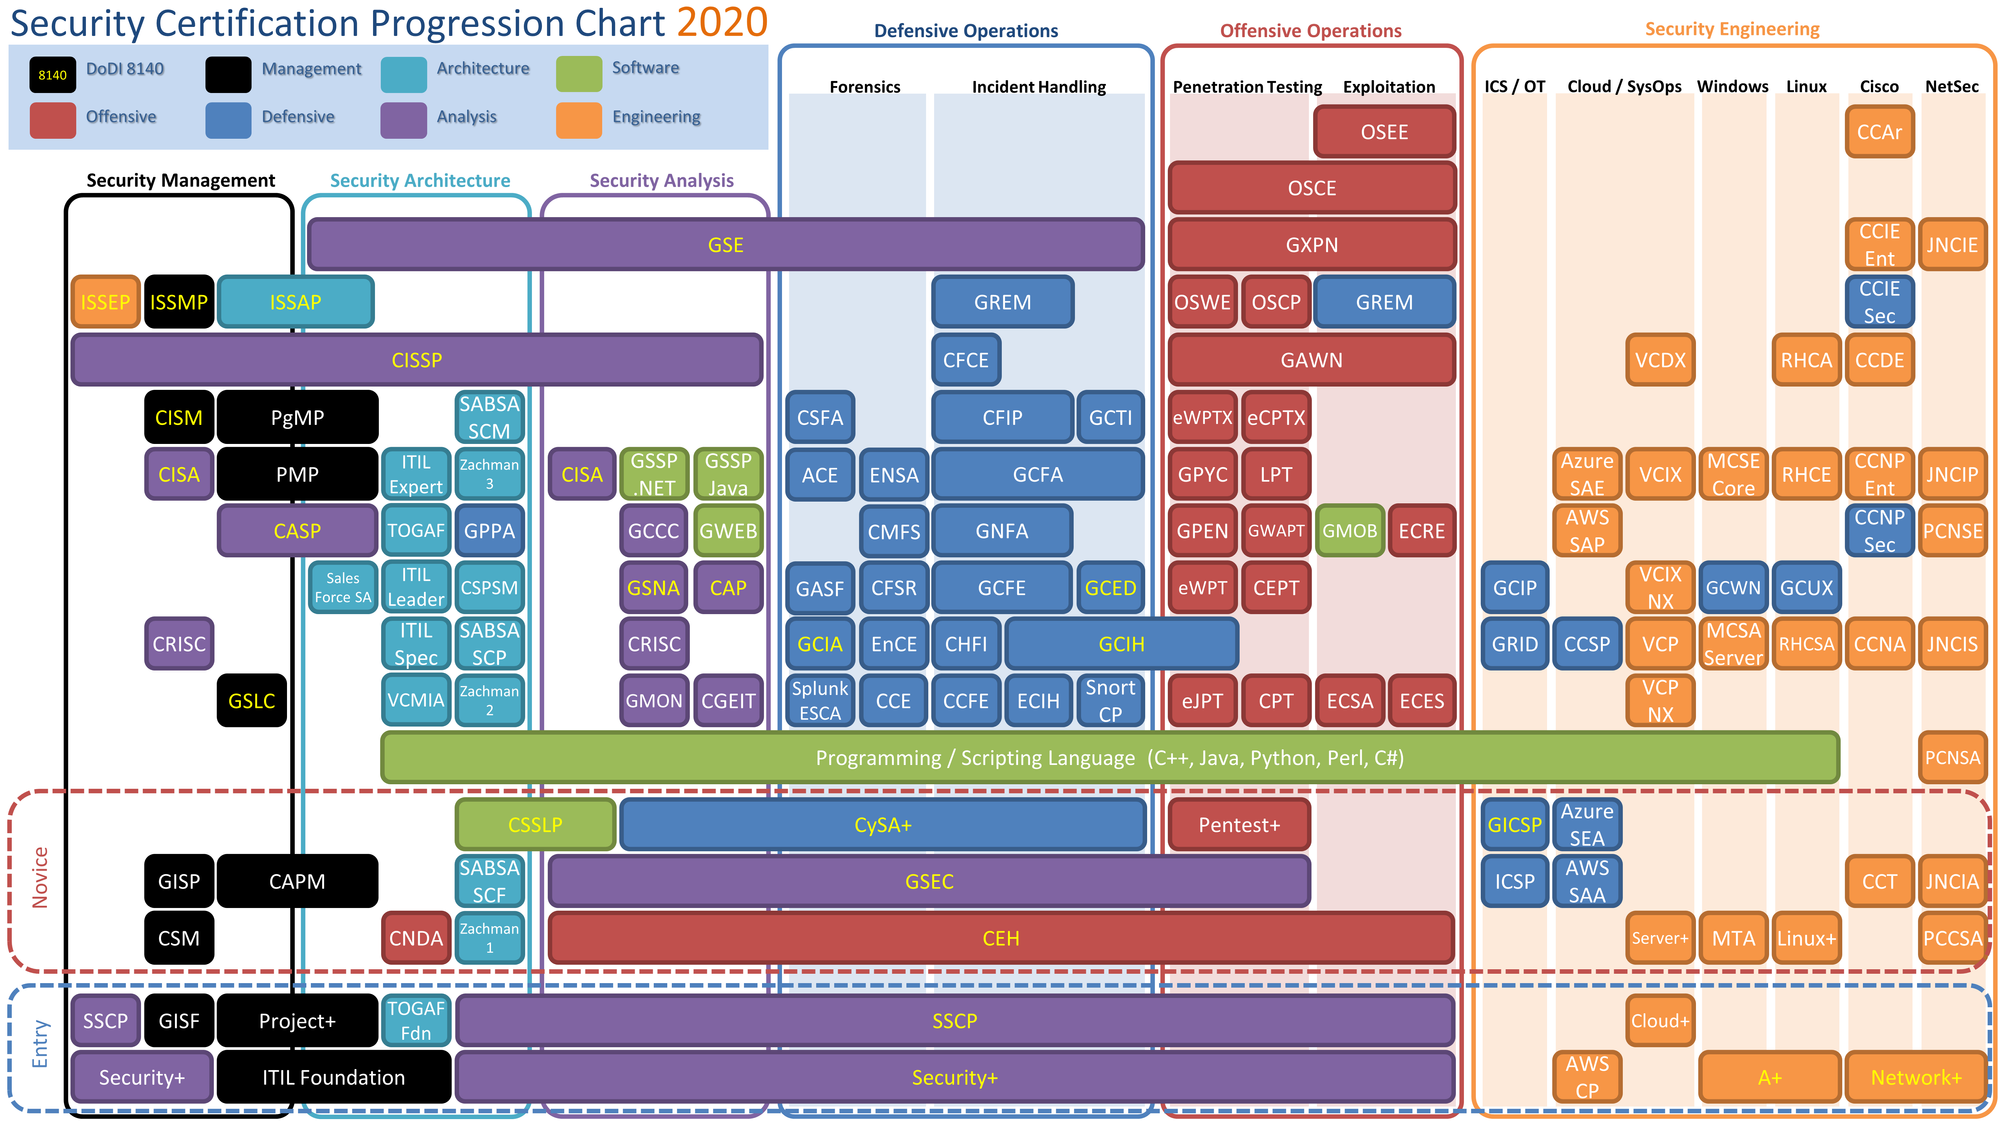 Security Certification Progression Chart 2020